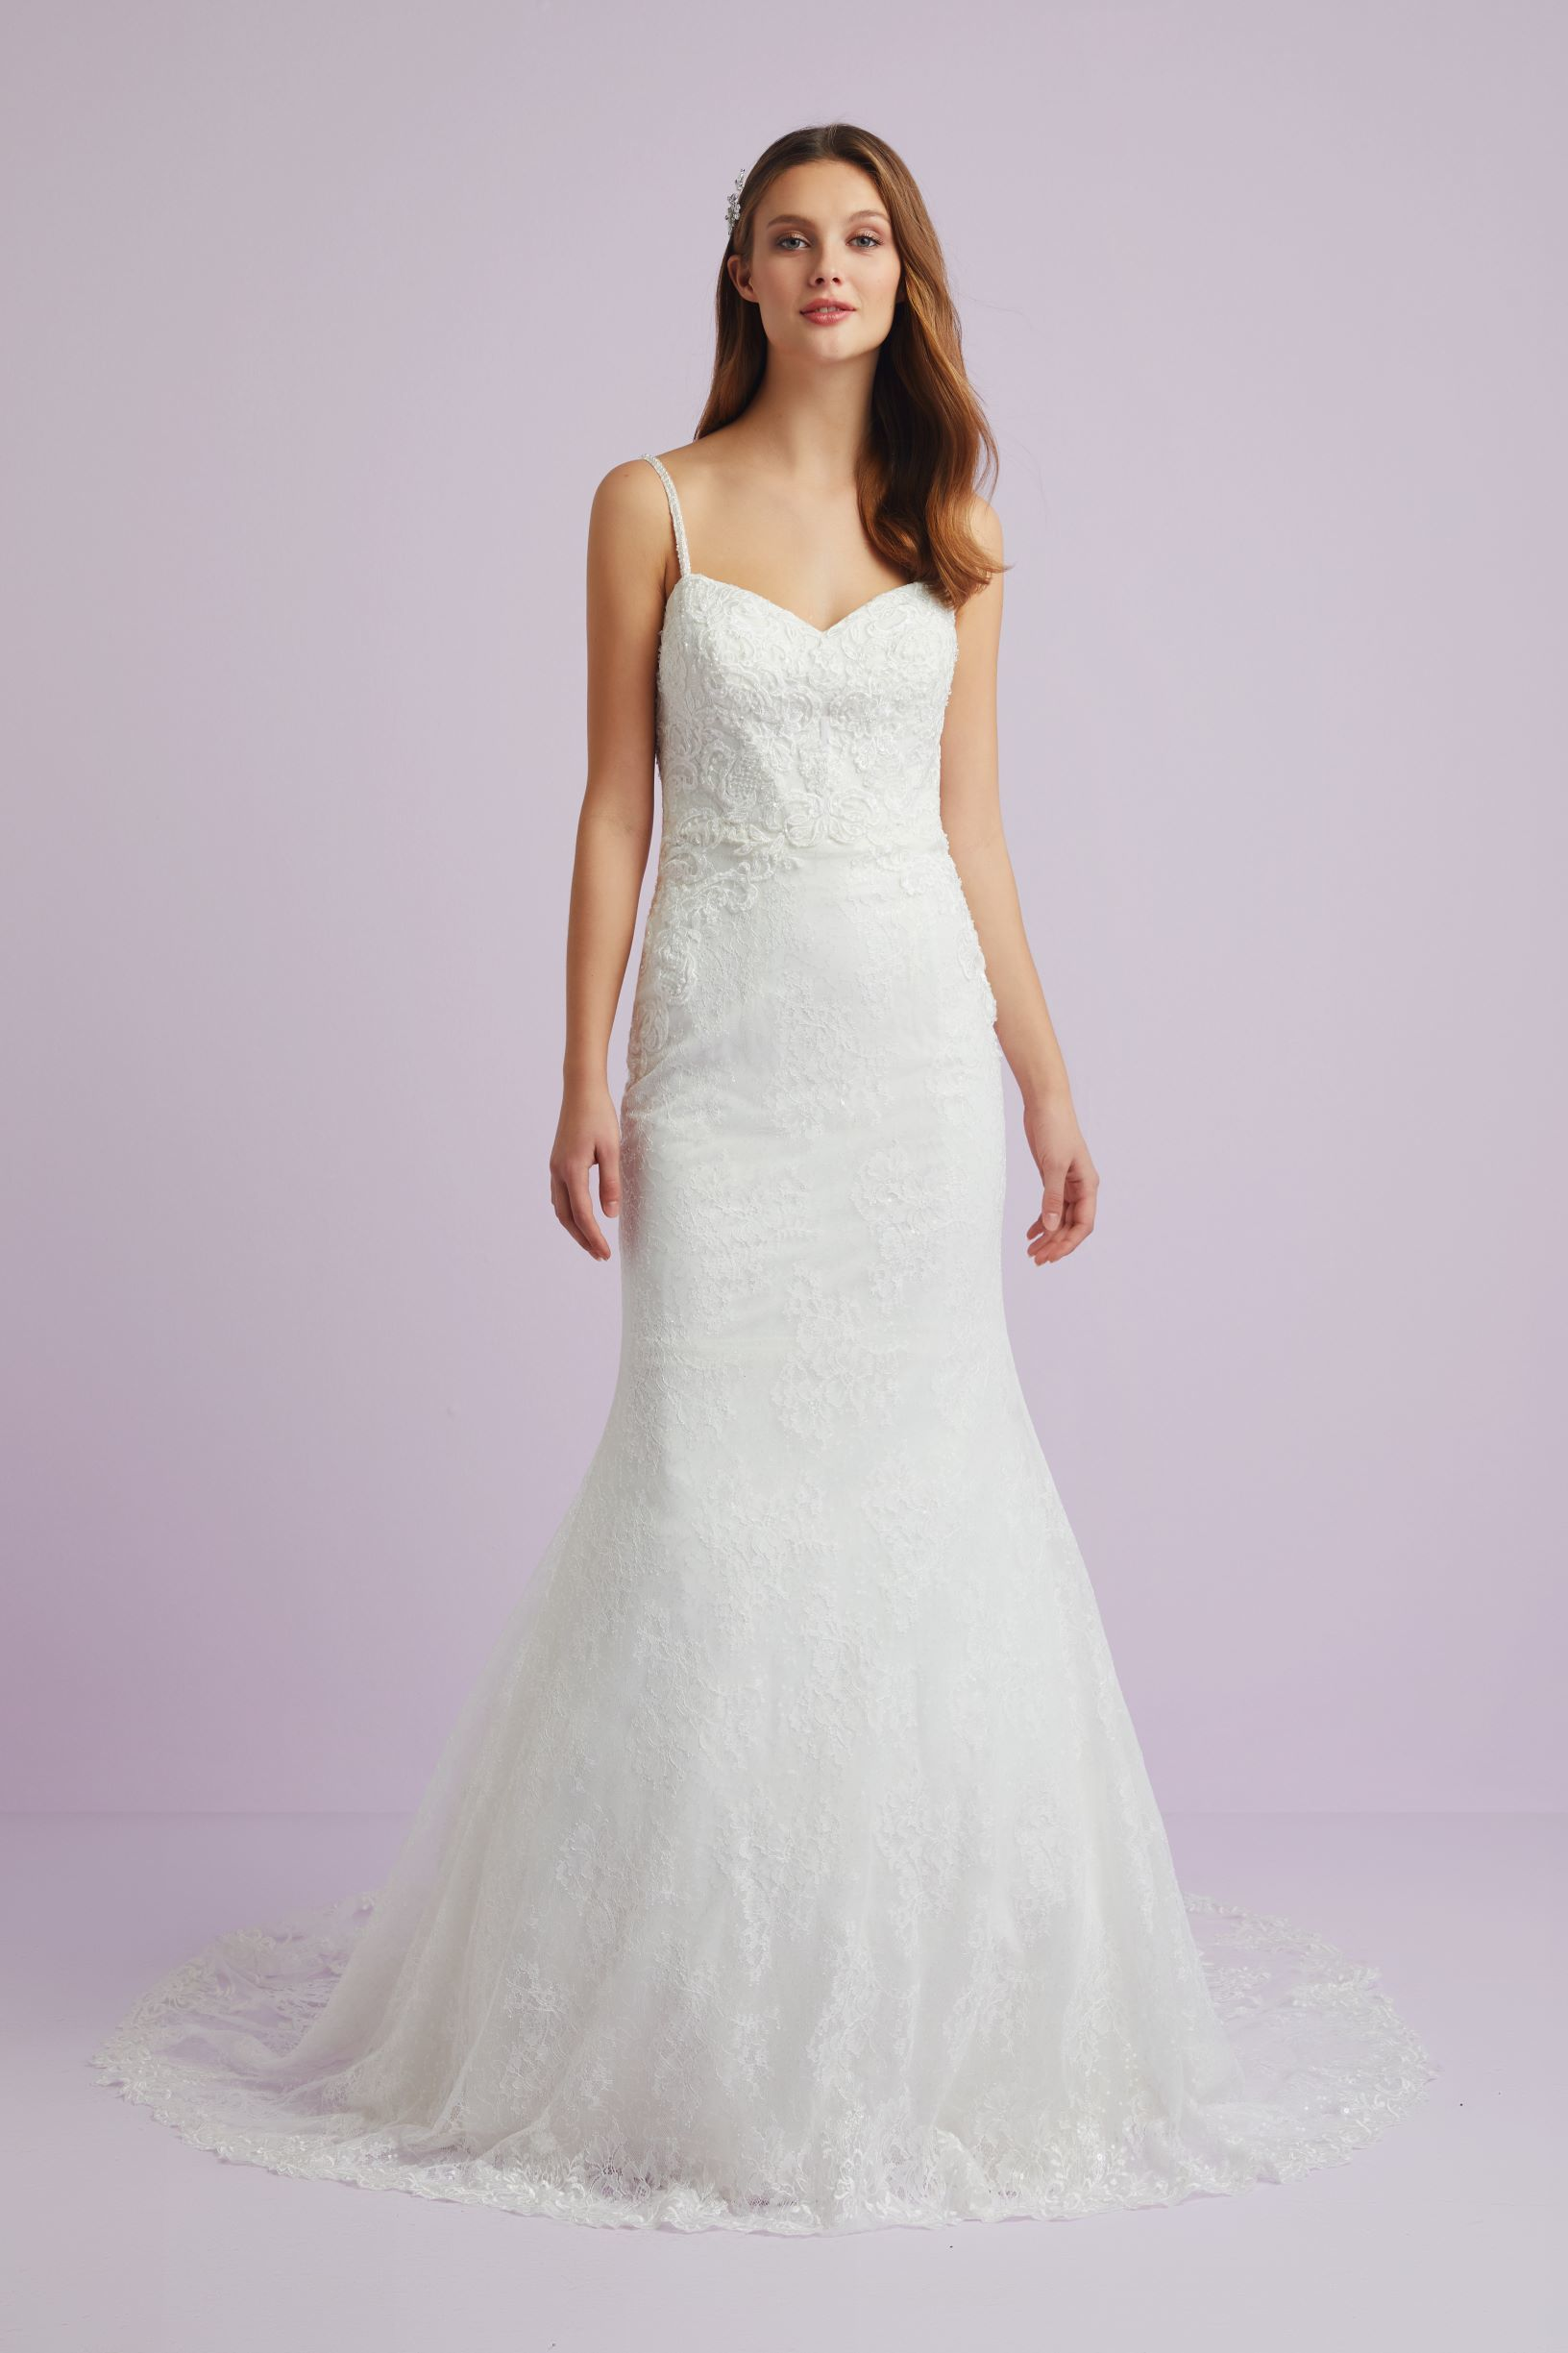 2019 Simple Wedding Dresses (With images) Simple